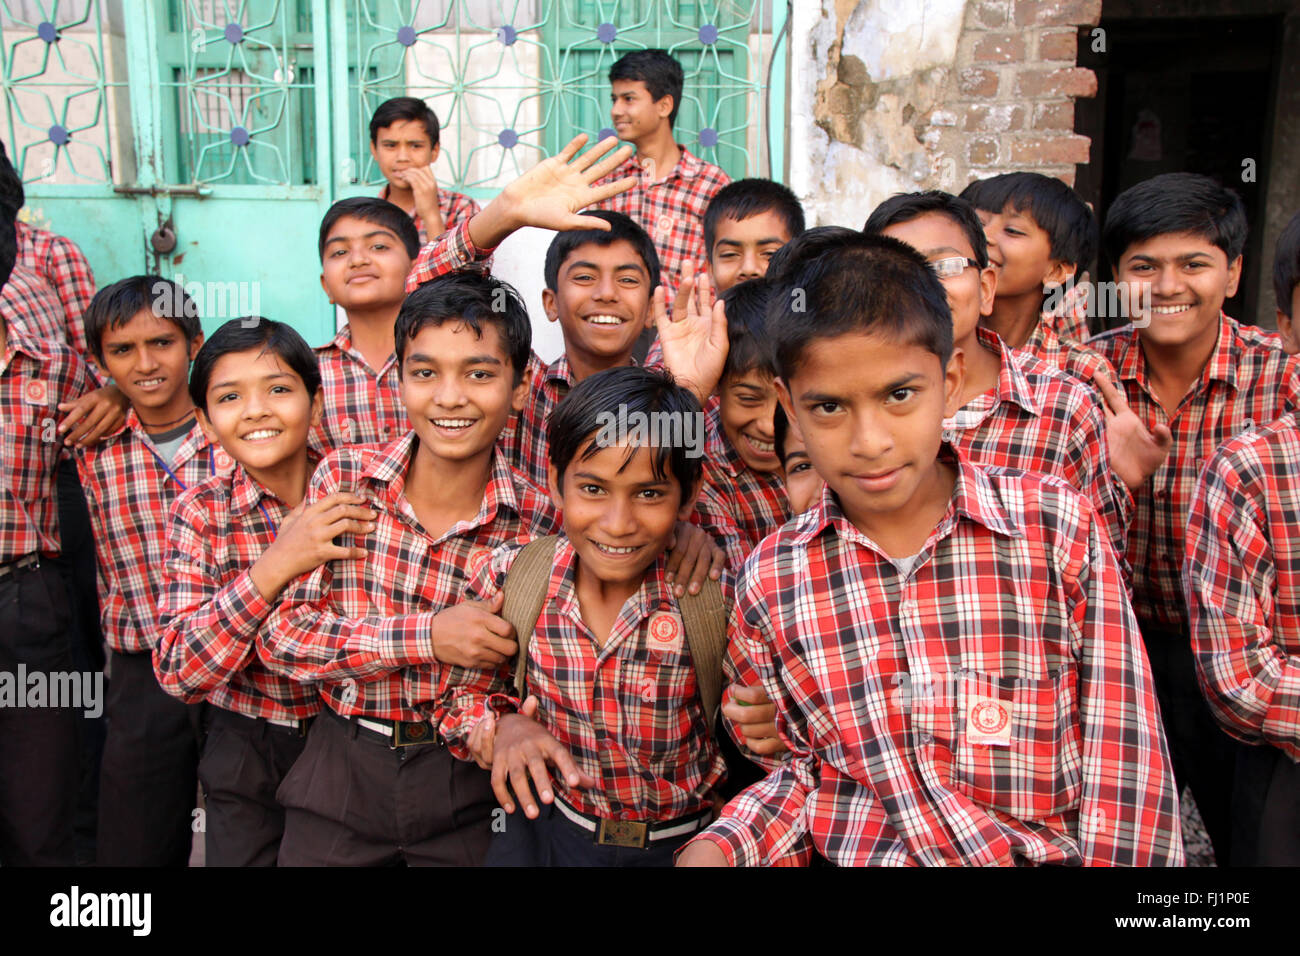 School boys with uniform dress code in Bhuj, Gujarat , India - Stock Image